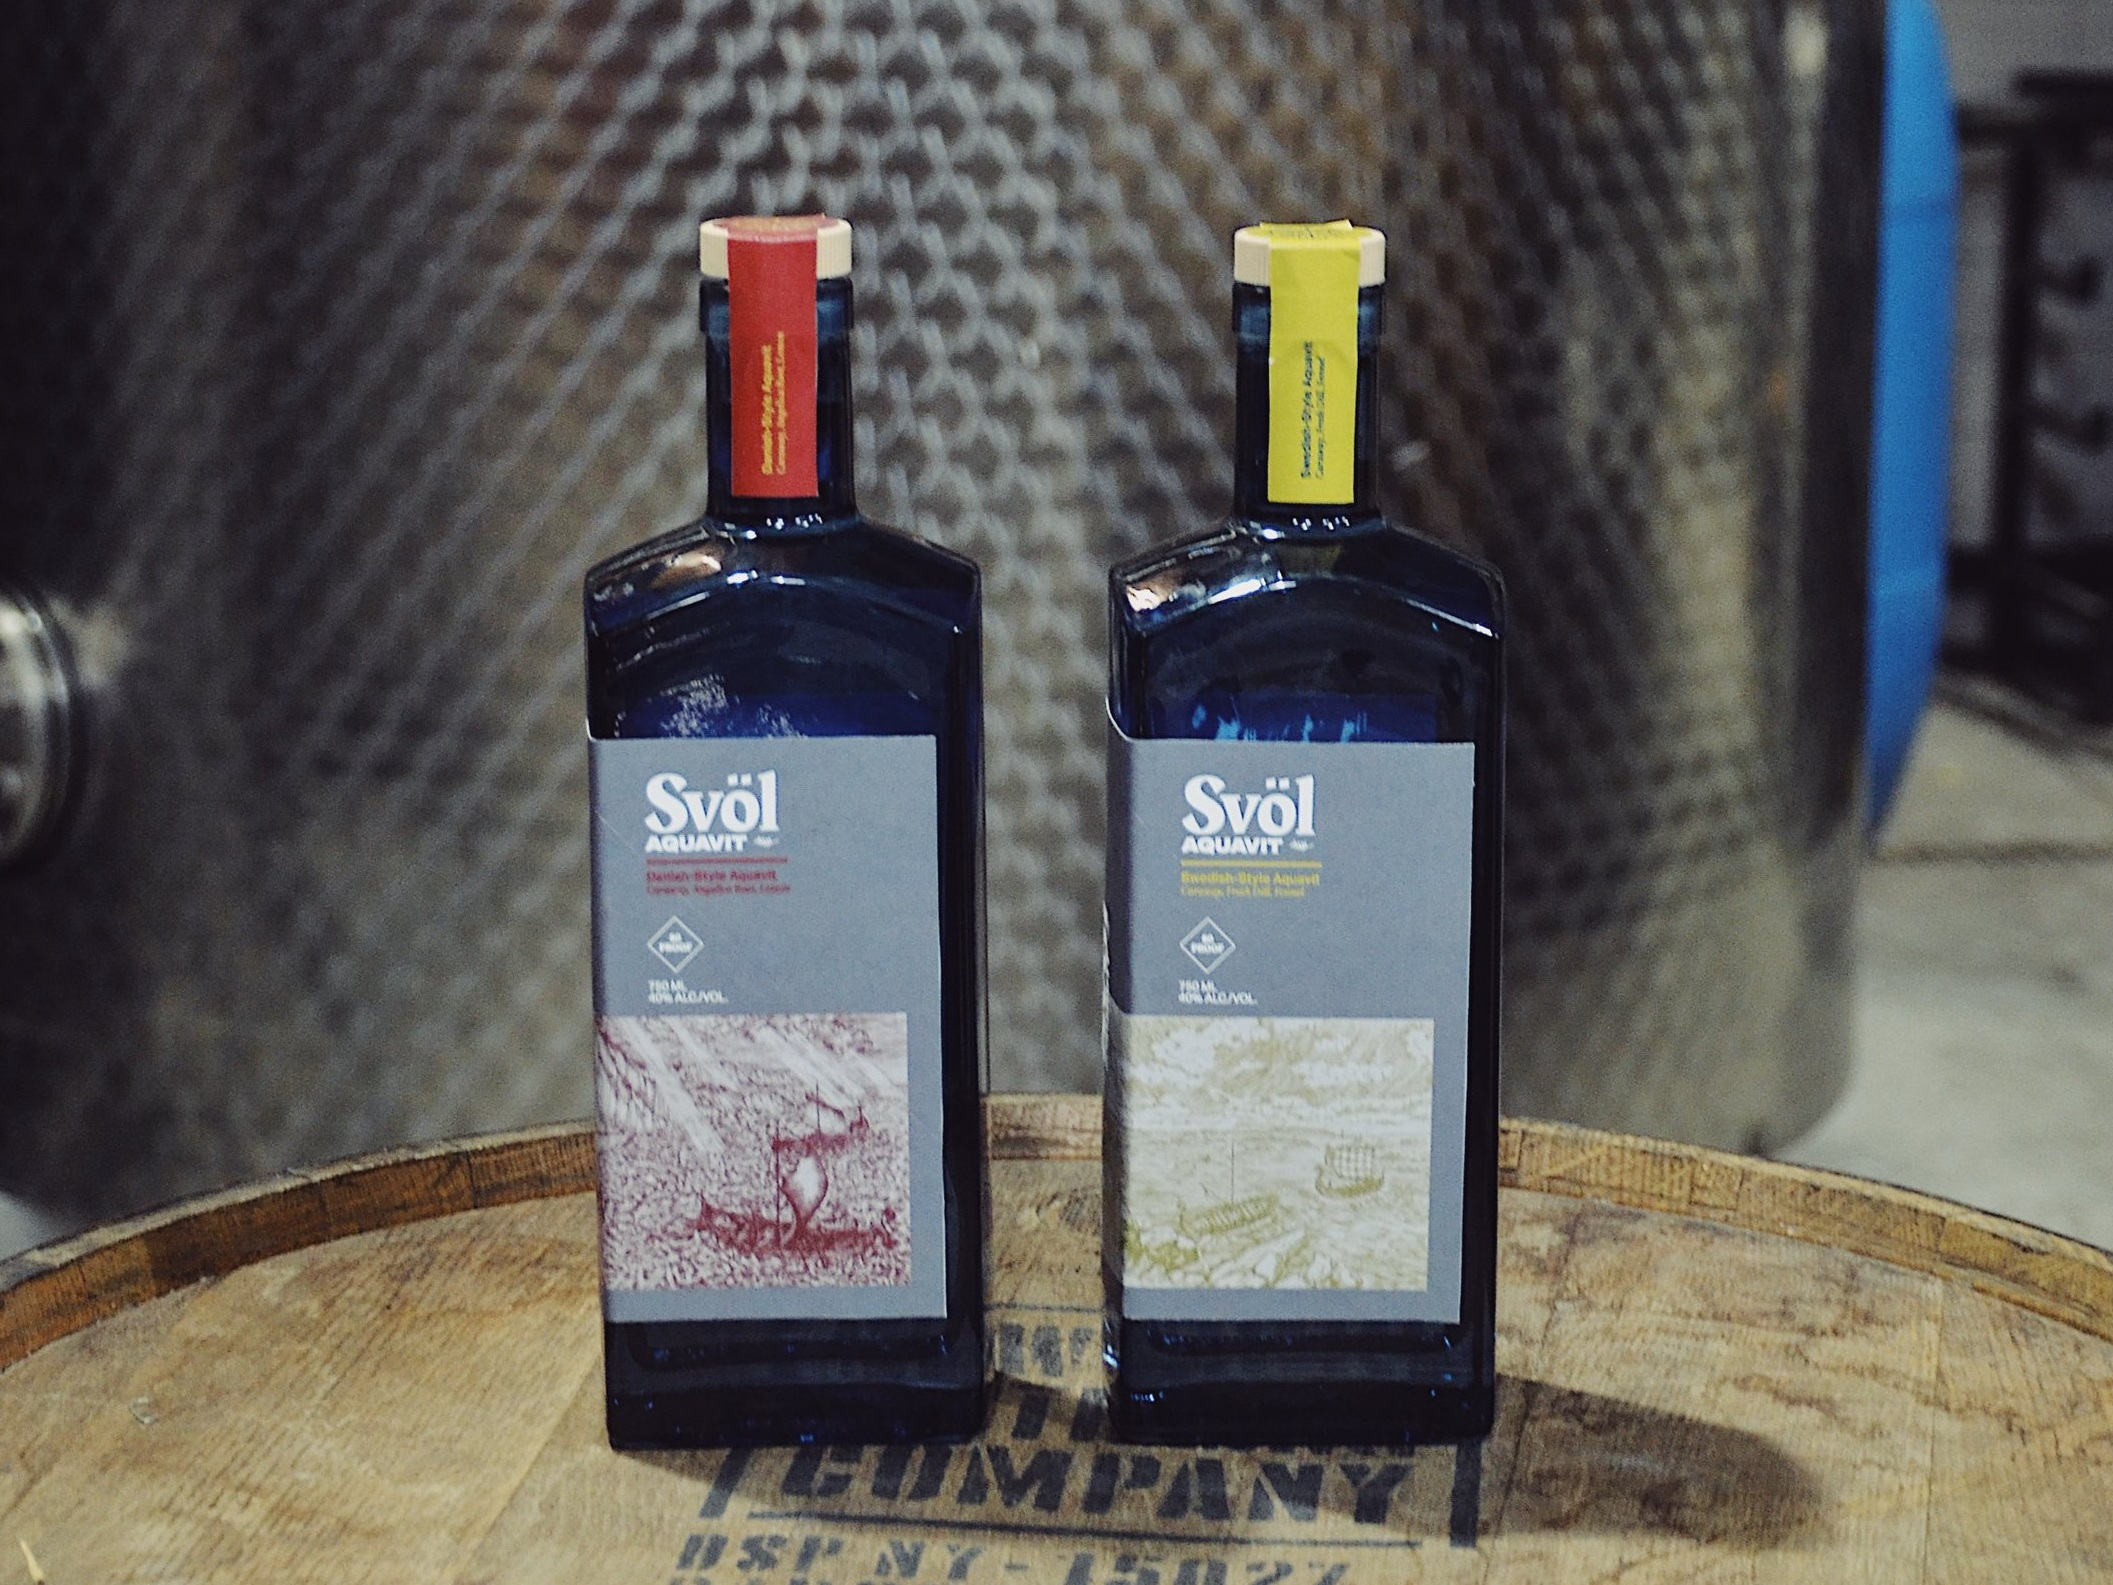 Svöl Aquavit - Taking a thoughtful gin-inspired approach to a centuries-old Scandinavian spirit.